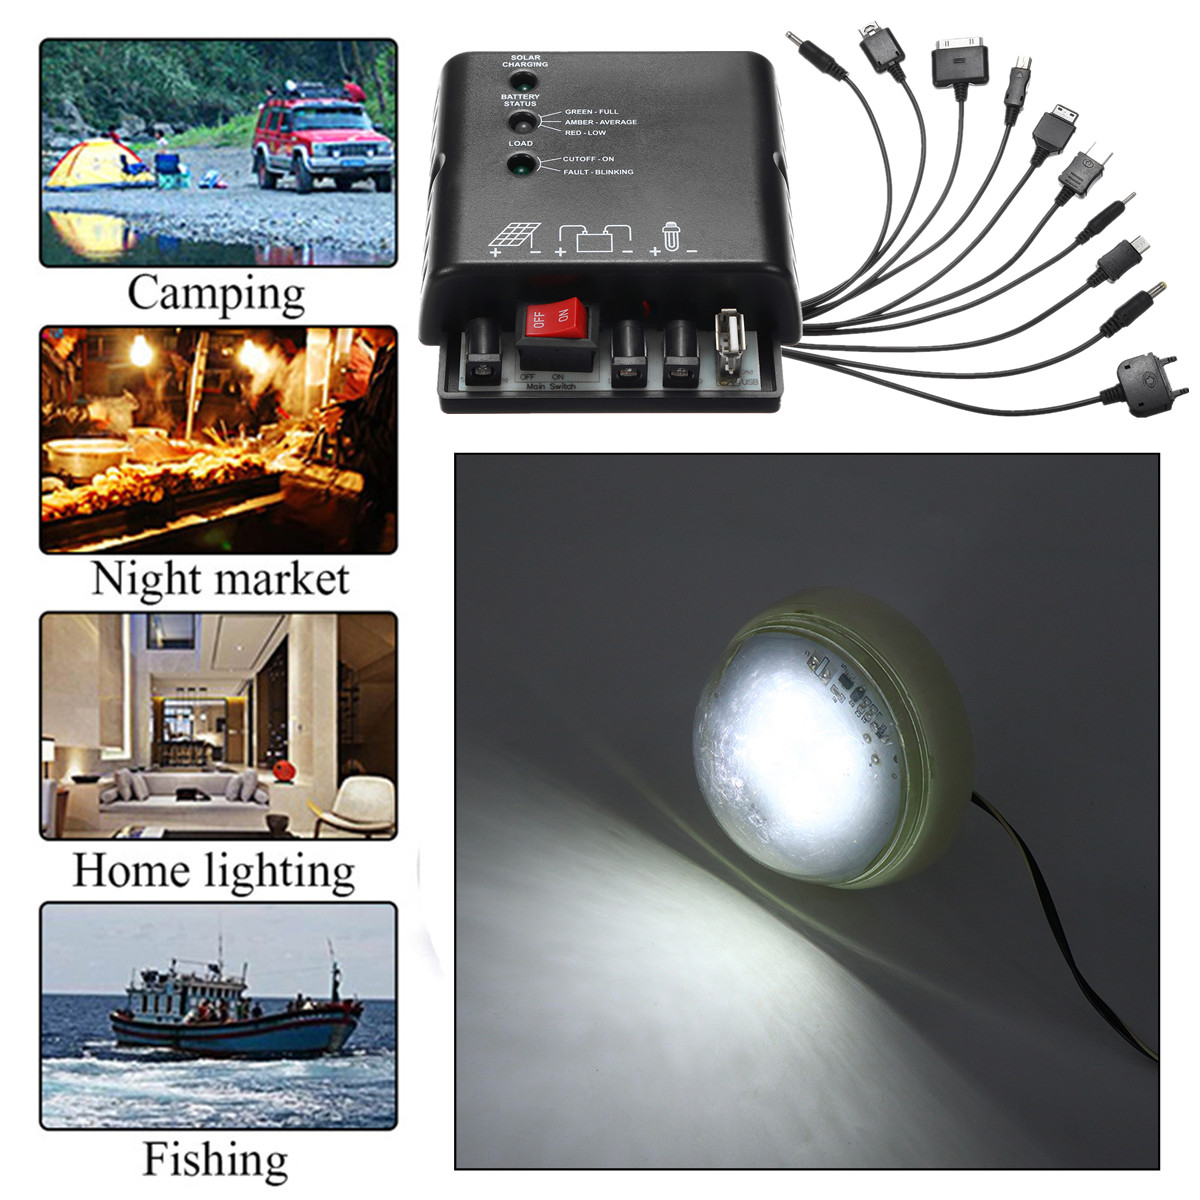 Portable Solar Panel Generator Solar Generator System for Camping Home With LED Bulbs